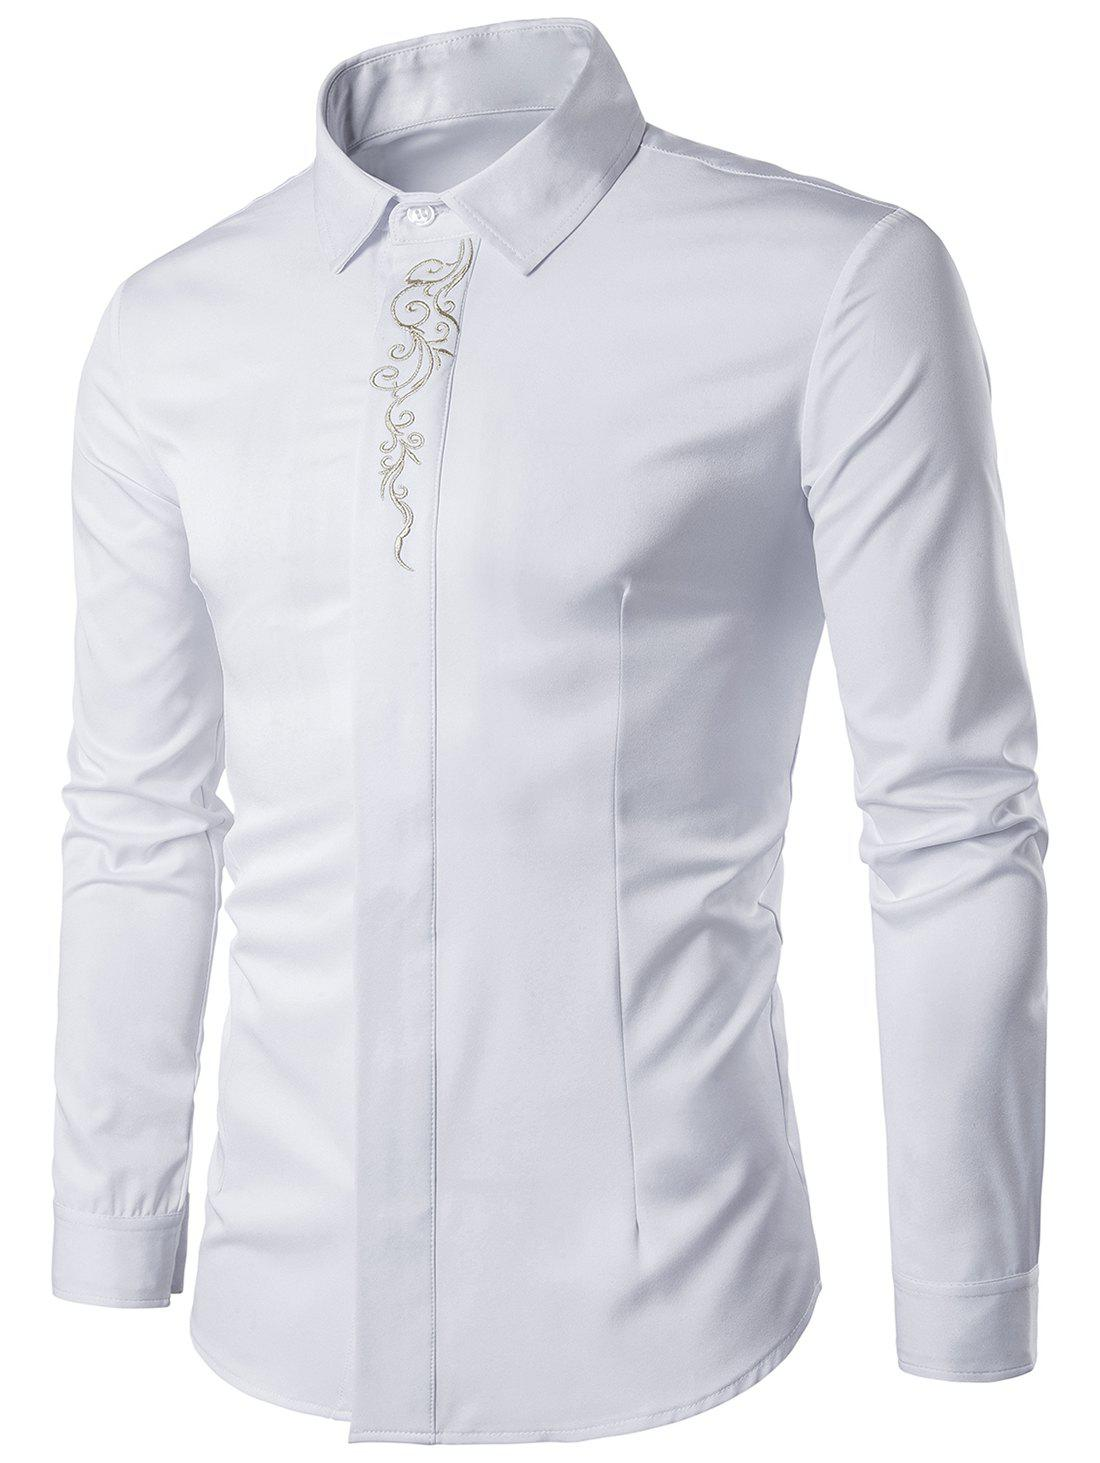 Baroque Embroidery Accent Button Up Long Sleeve Shirt - WHITE 2XL